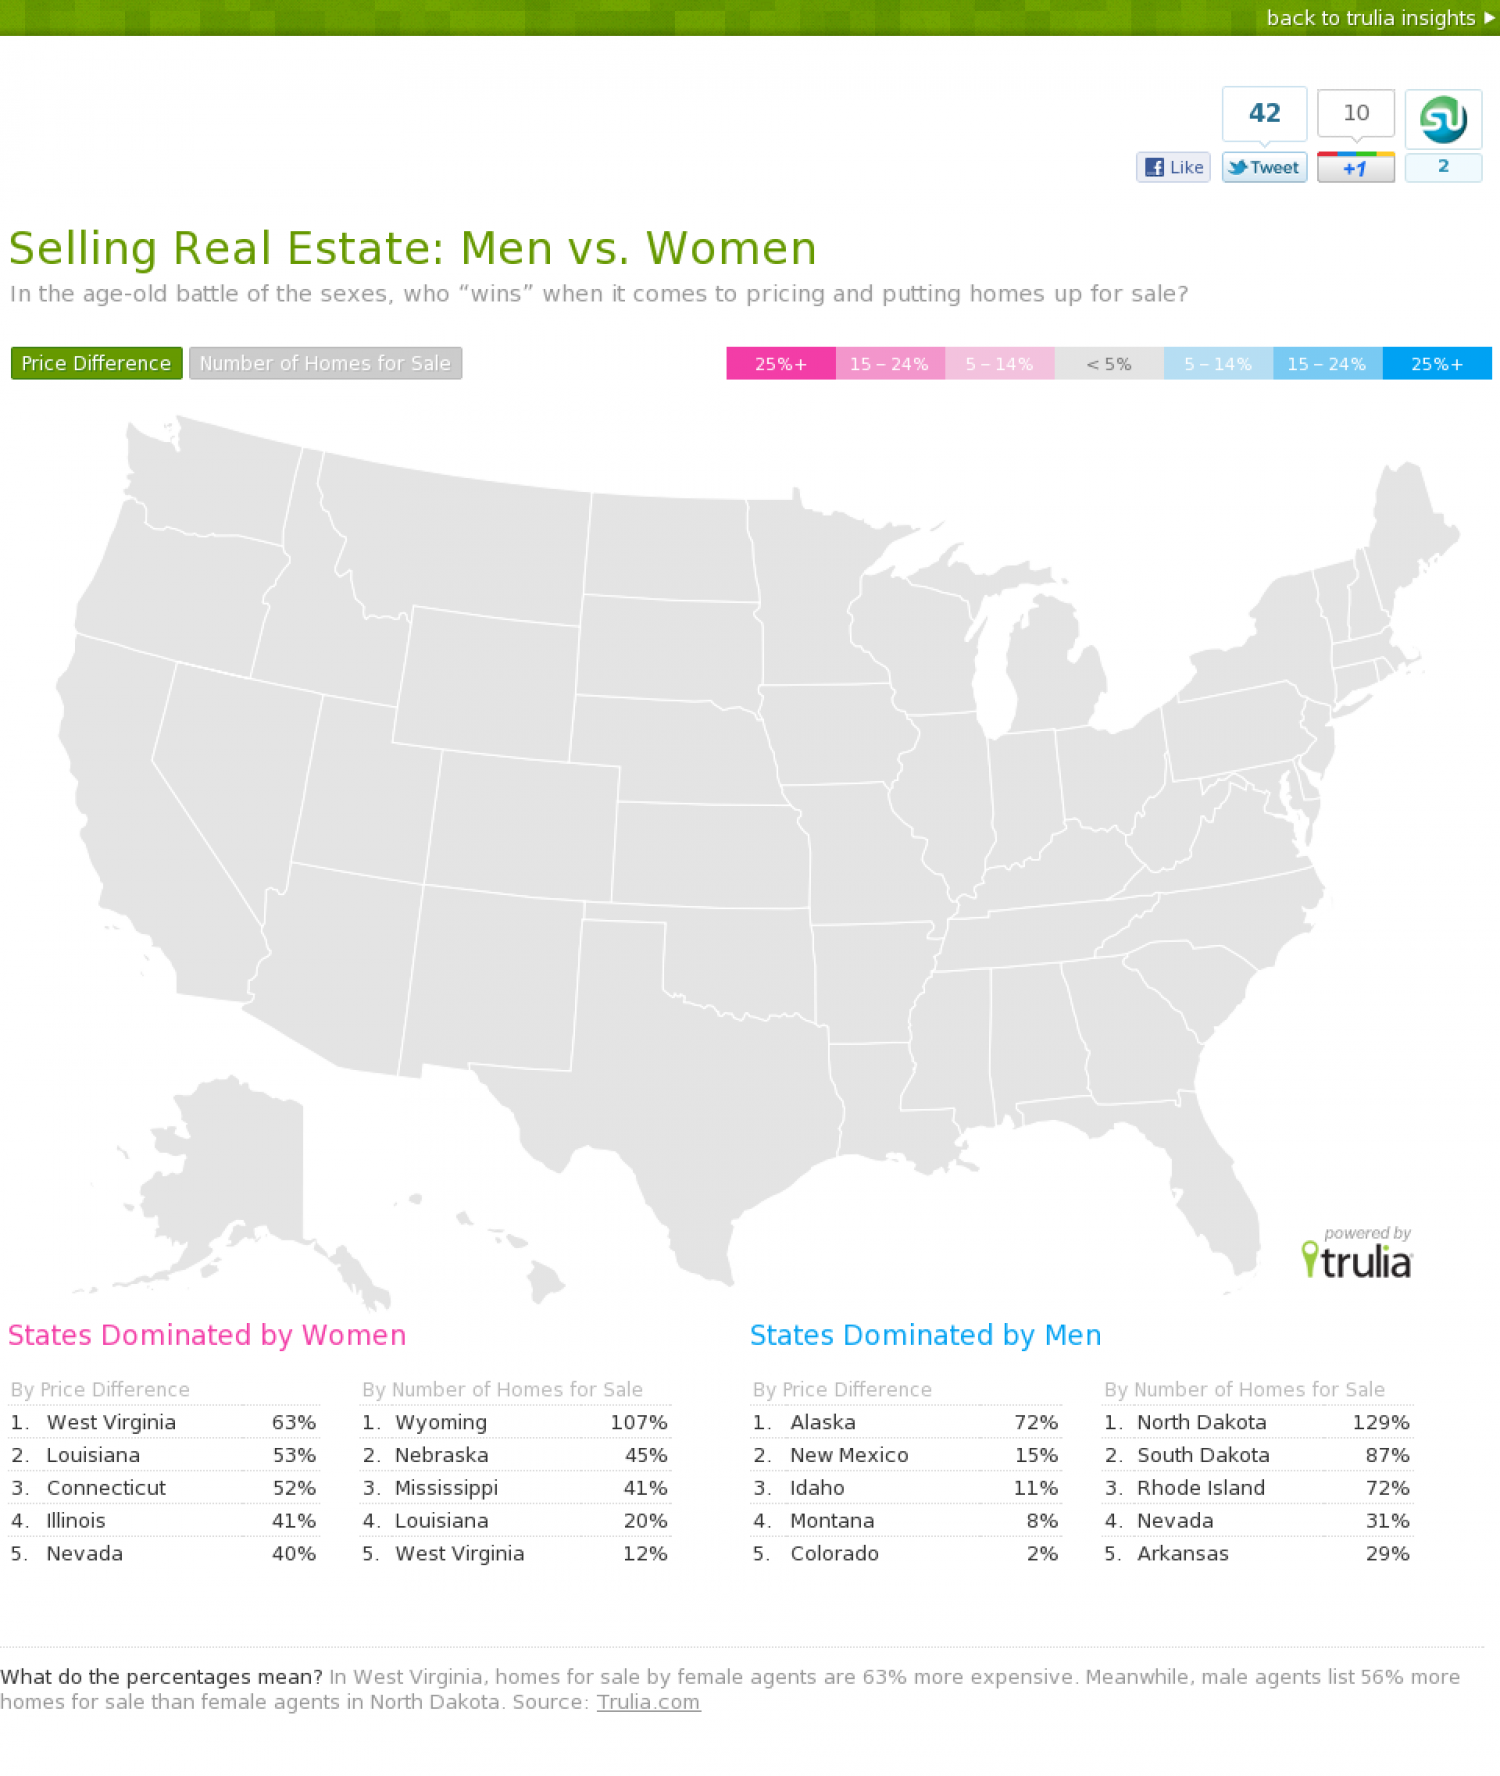 Selling Real Estate: Men vs. Women Infographic